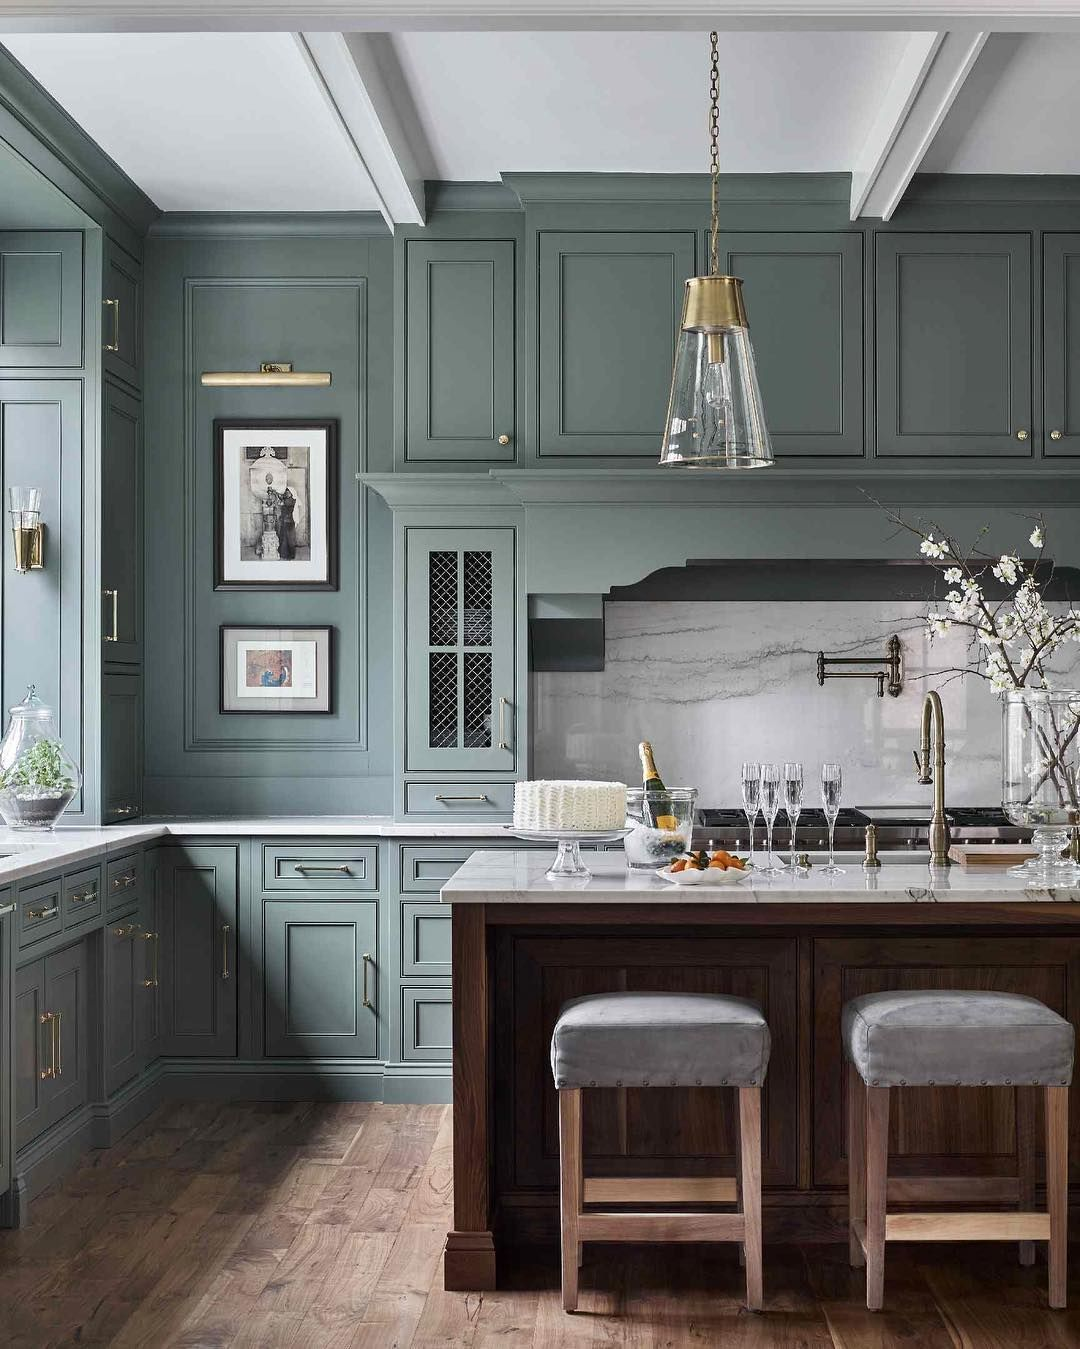 Pin by jody blake on lovely kitchens ii in pinterest